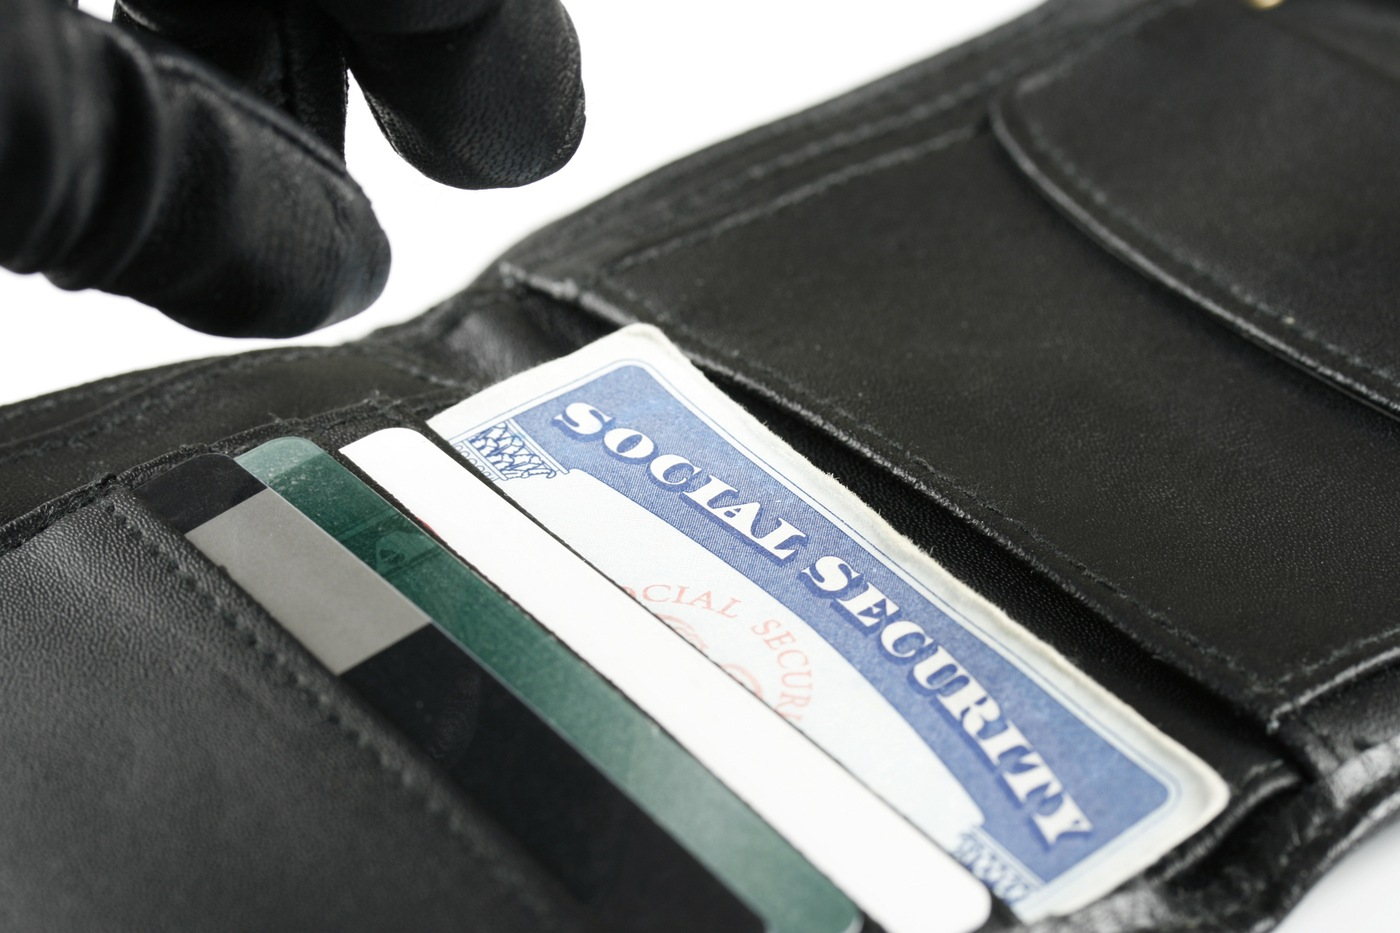 Identity Theft Wallet Thief